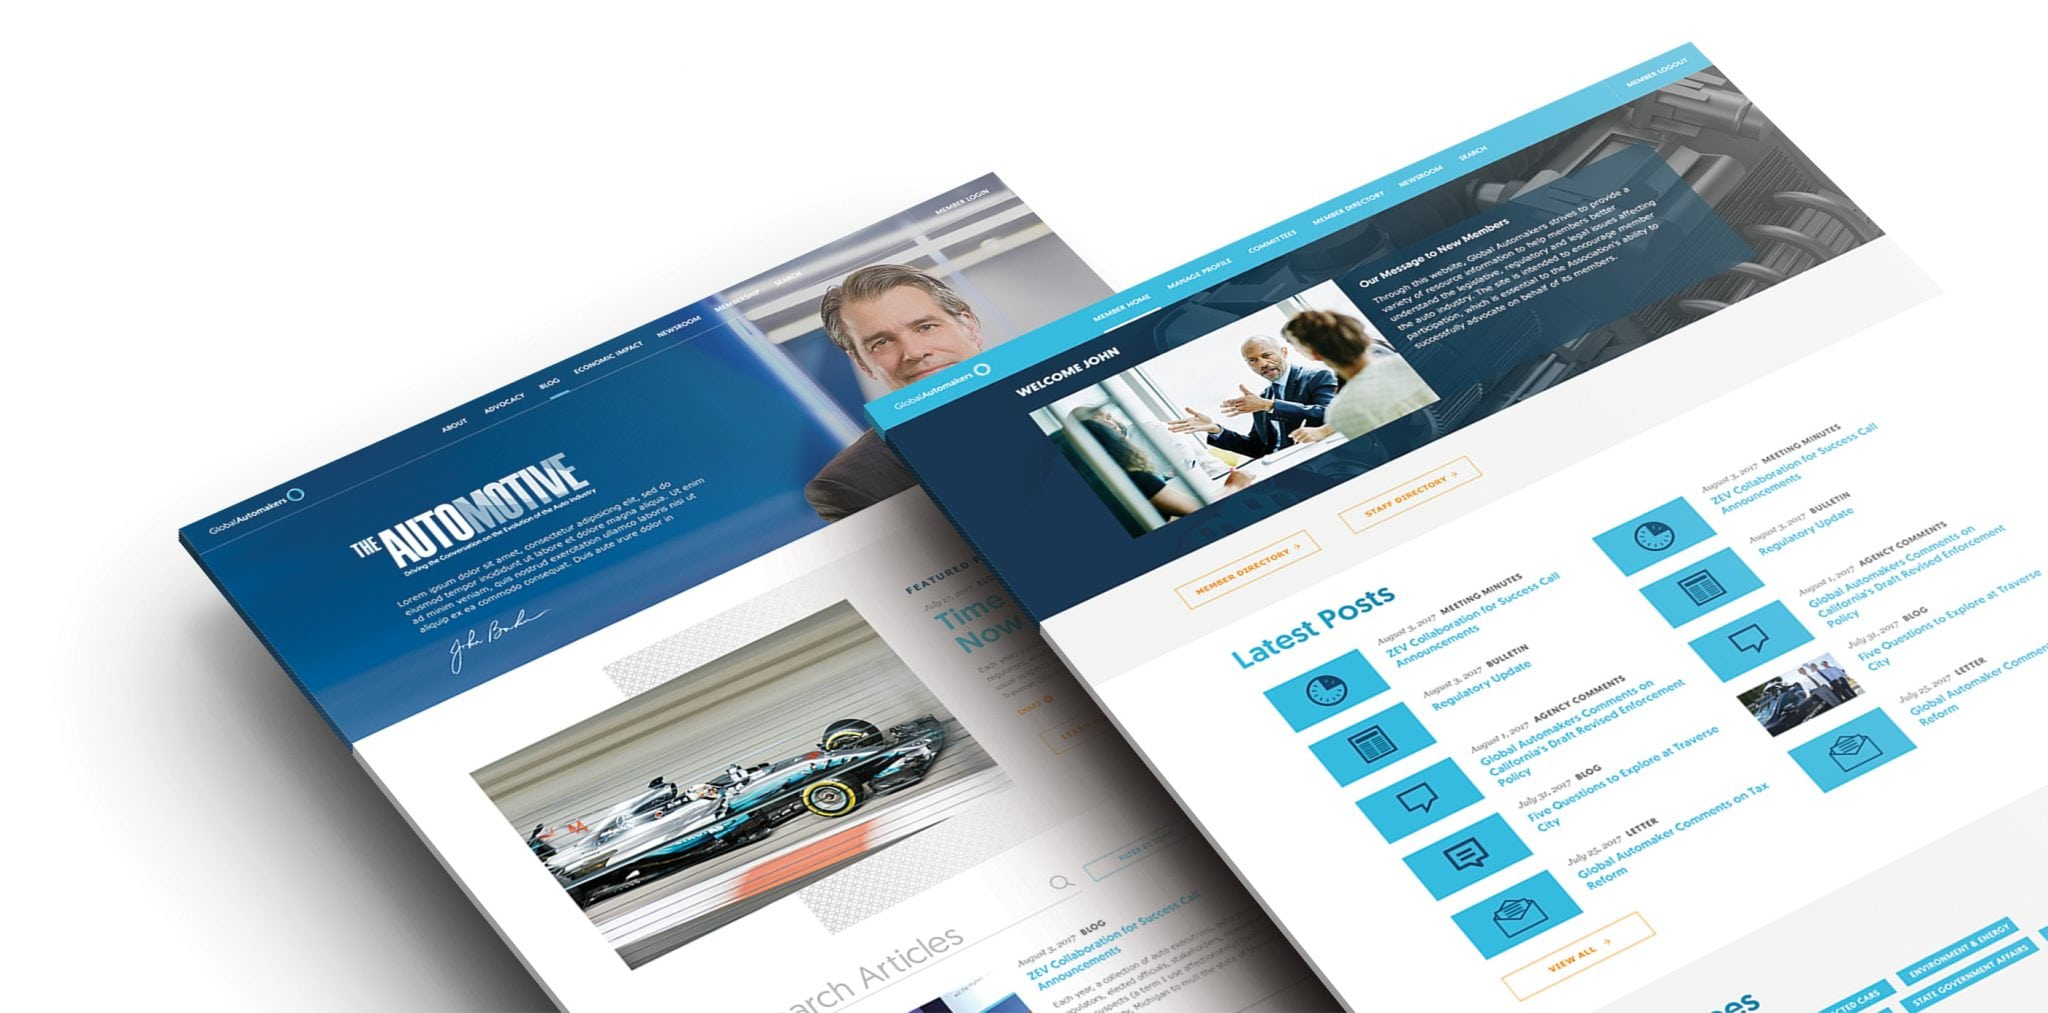 Global Automakers - The Automative Webpages